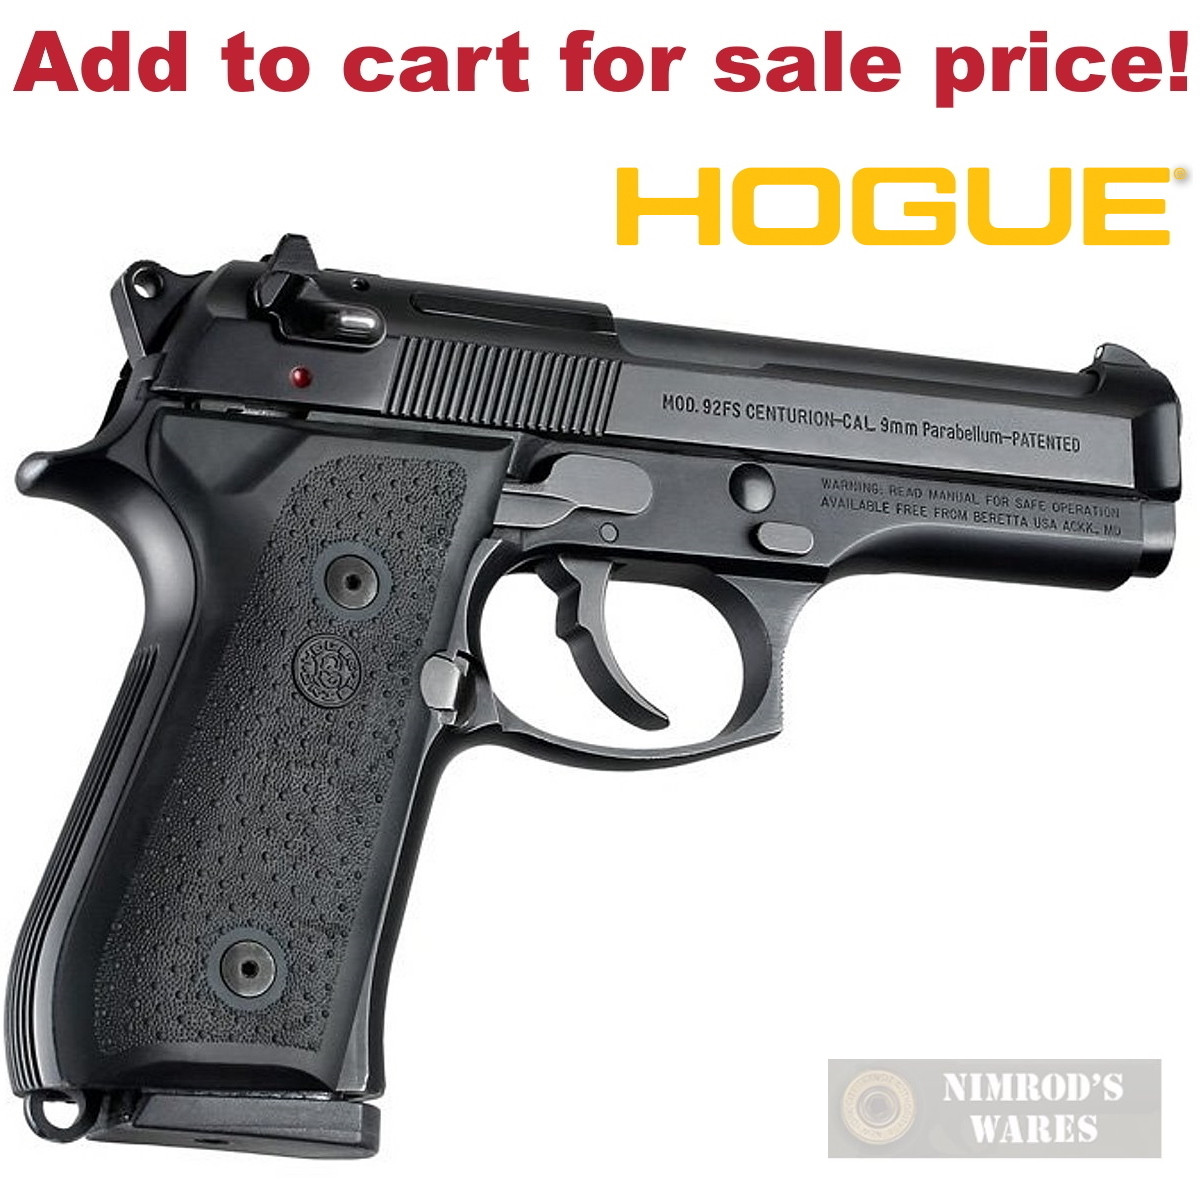 HOGUE Beretta 92F 92FS 96 M9 92A1 & MORE! GRIP Panels Rubber 92010 - Add to  cart for sale price!